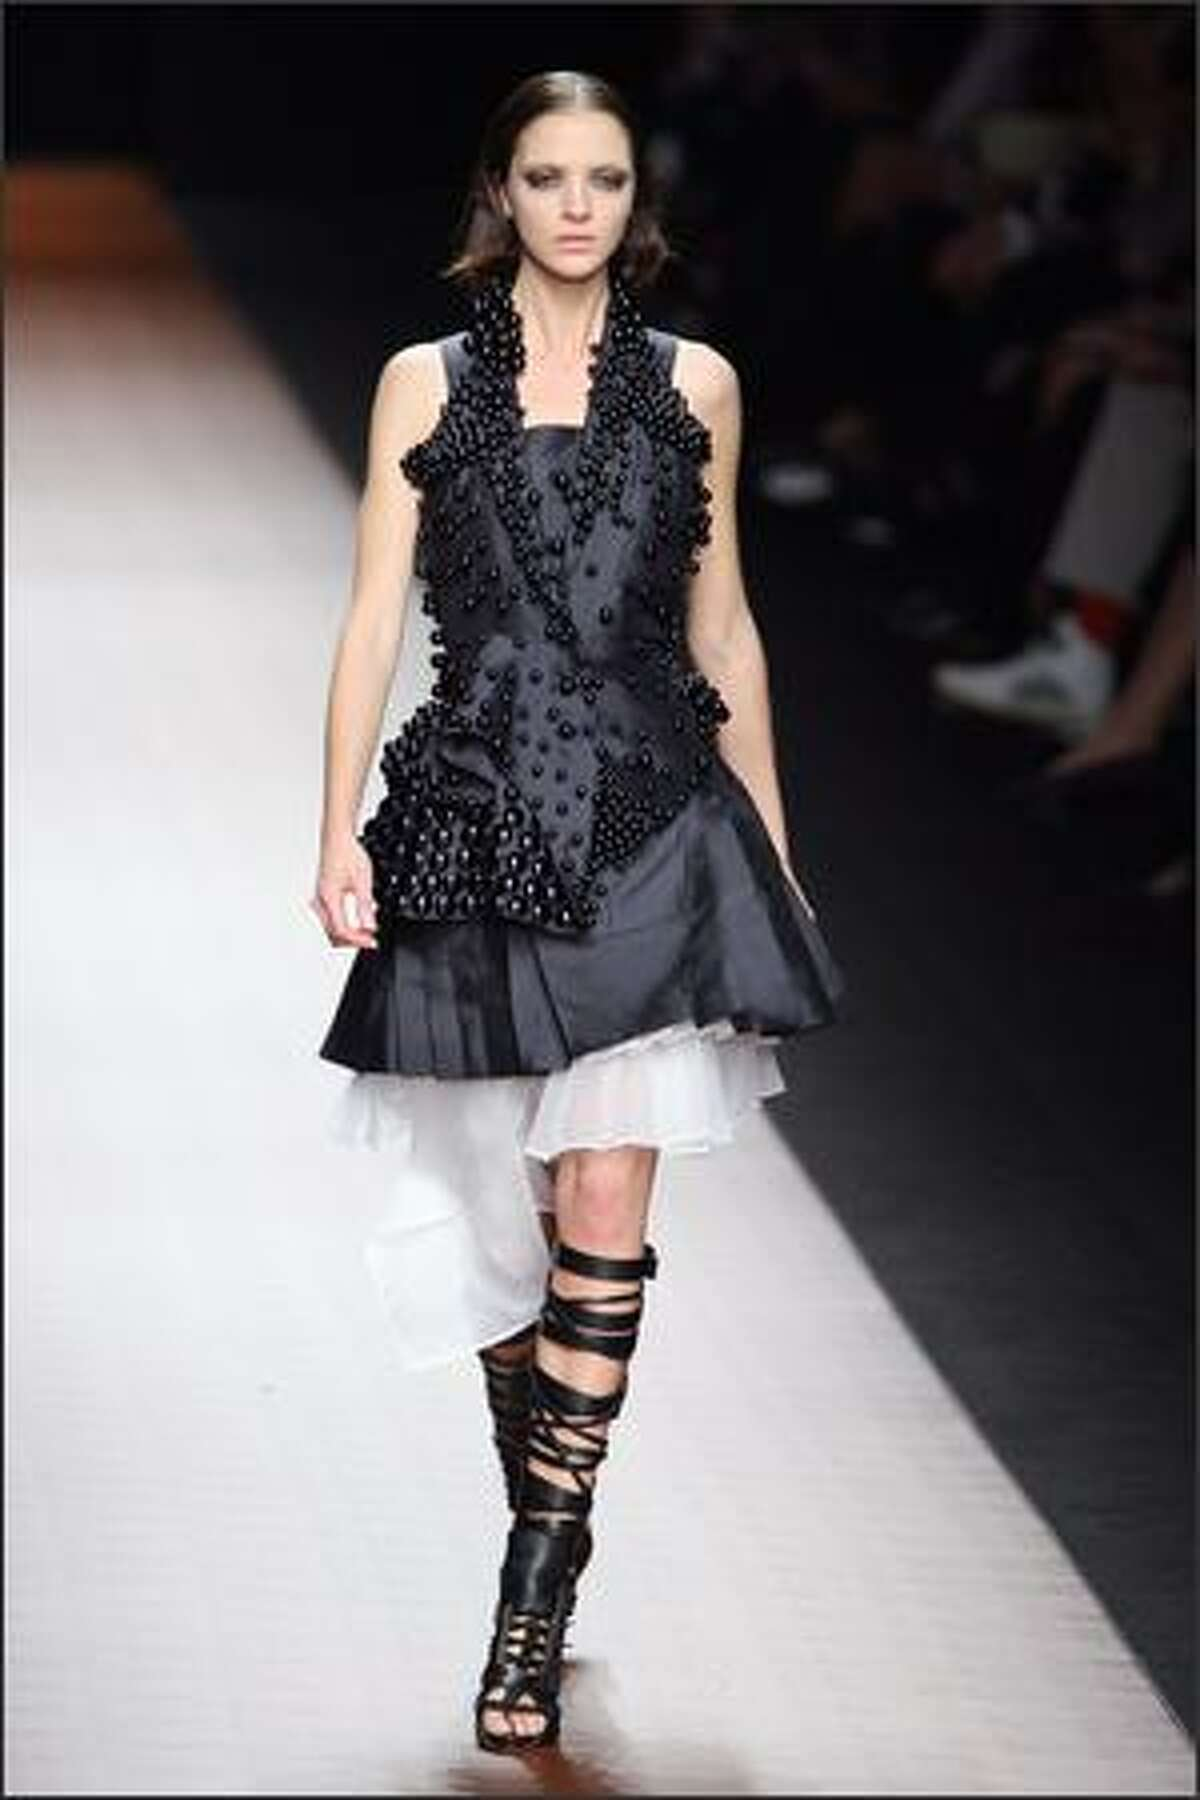 Italian model Maria Carla Boscono presents a creation by Ricardo Tisci for Givenchy.